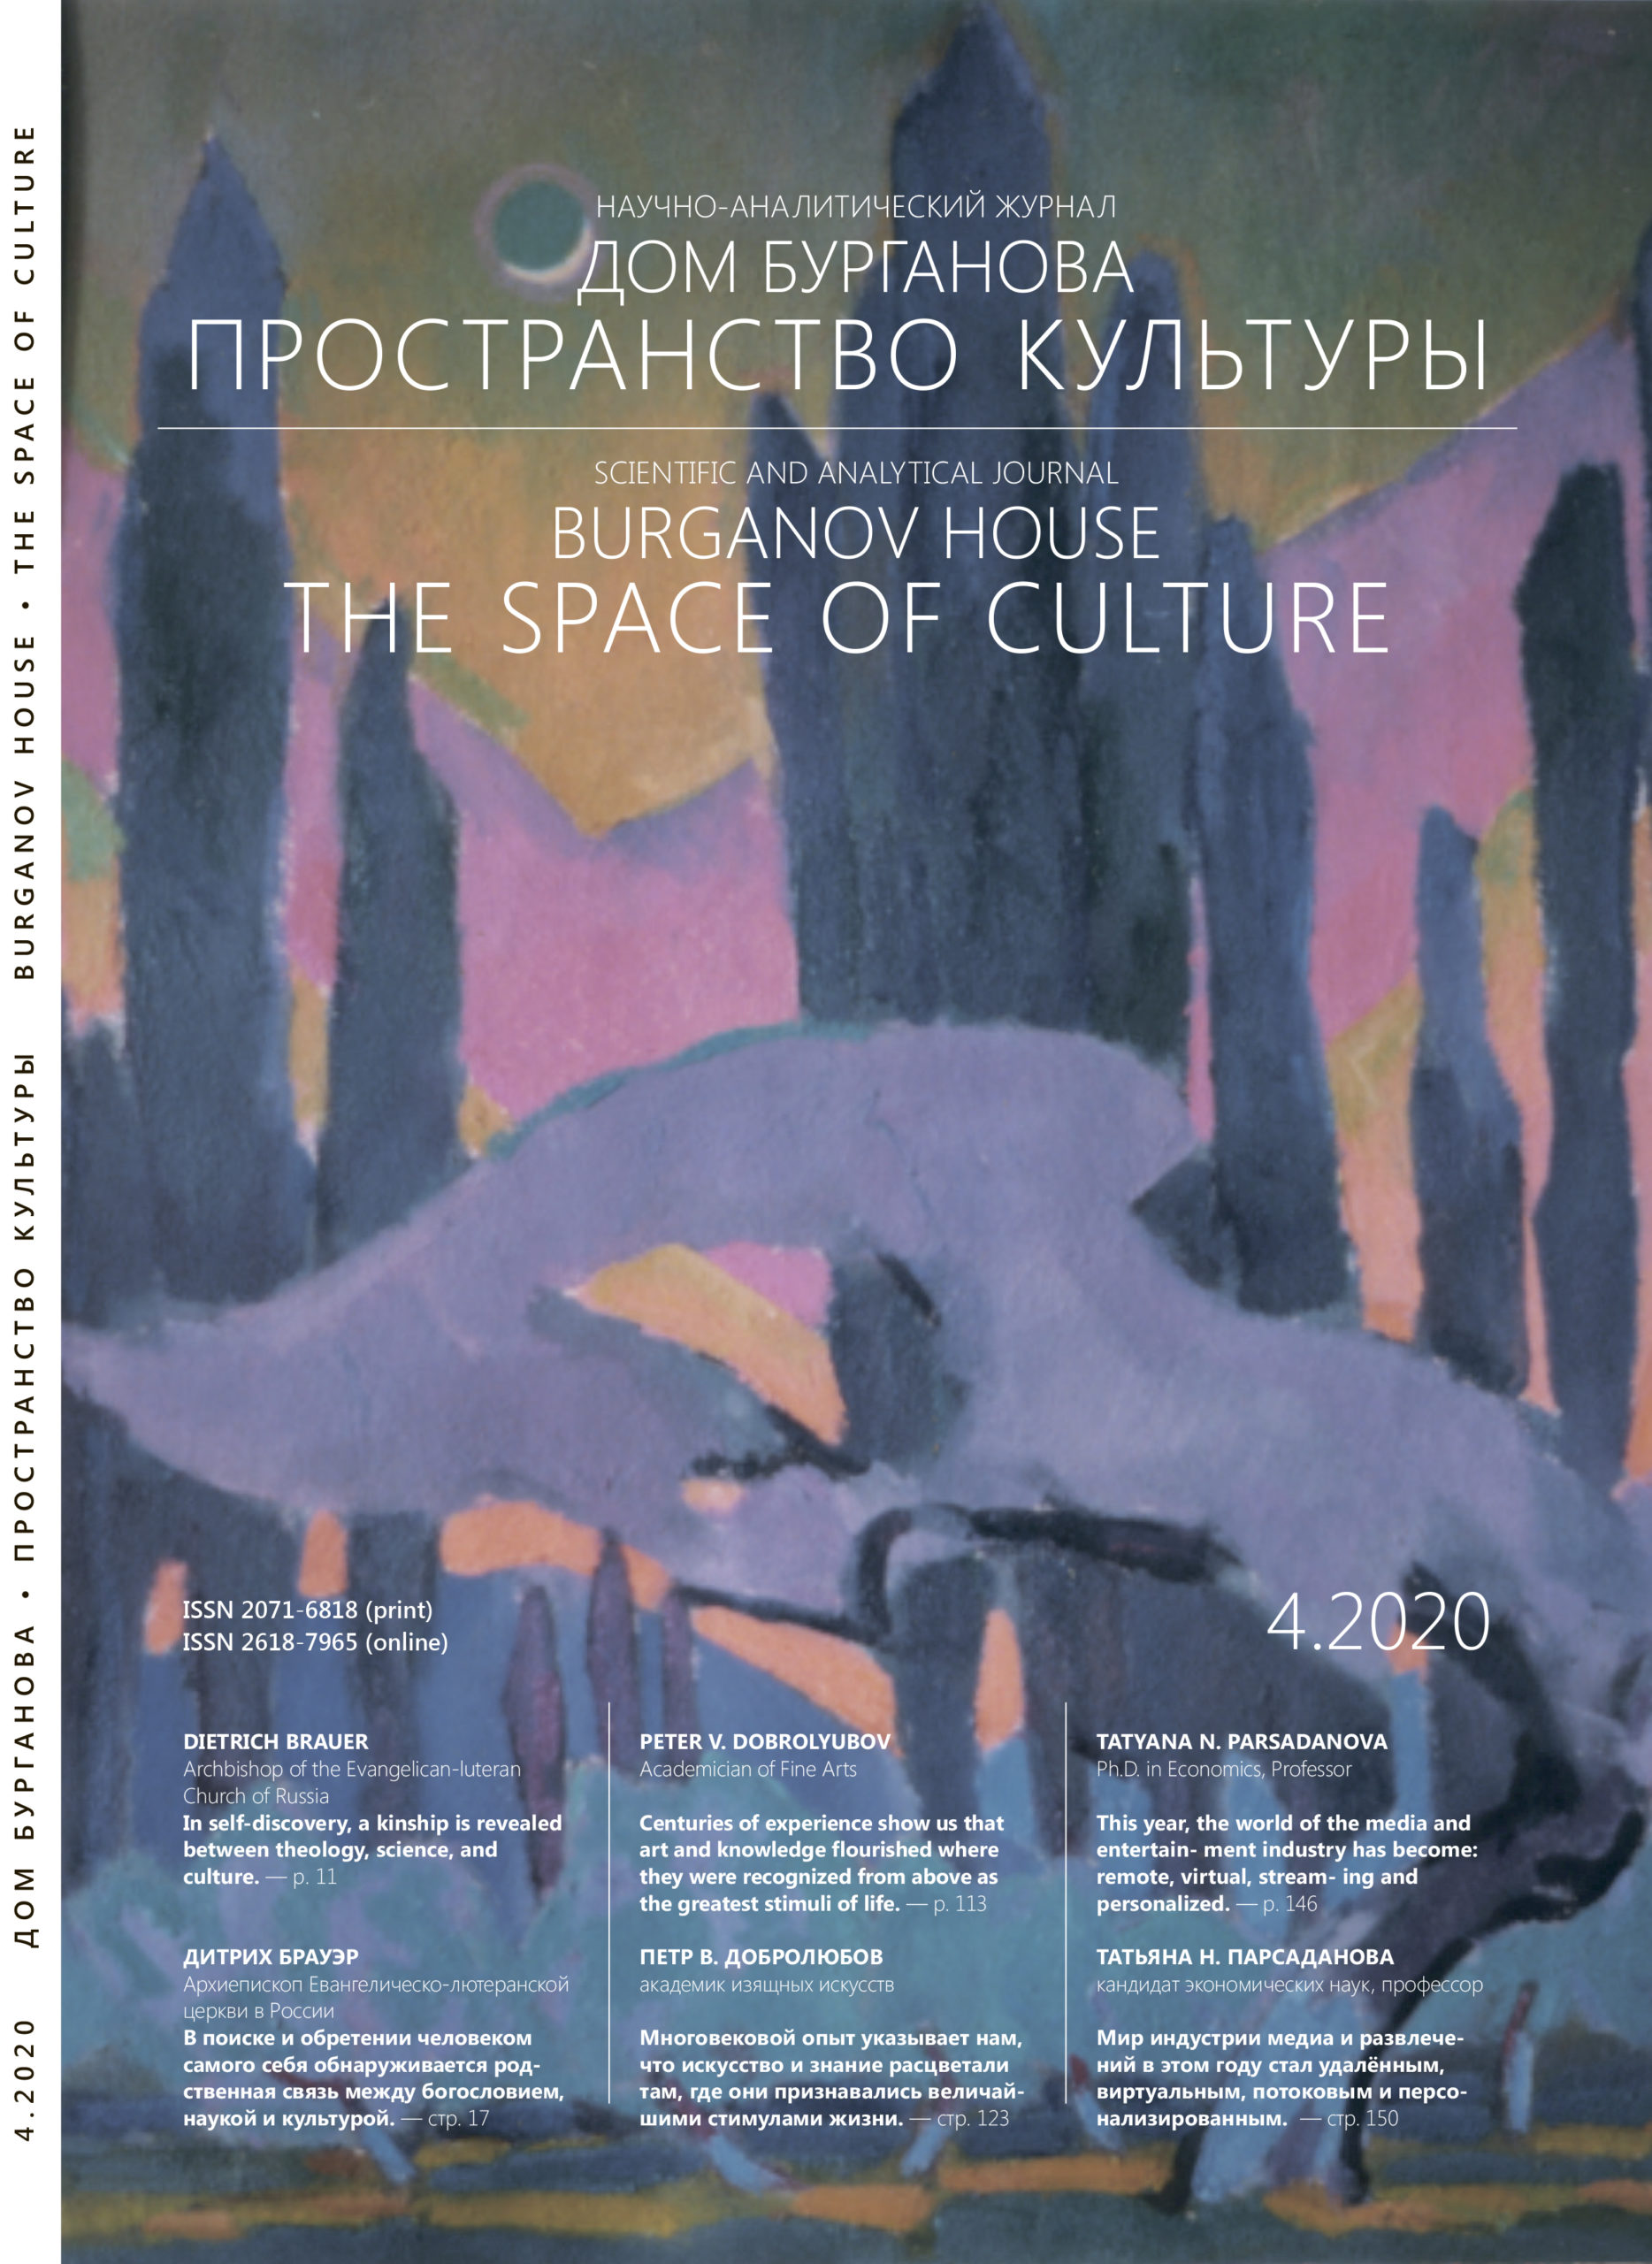 Journal Burganov House. The Space of Culture. 4.2020